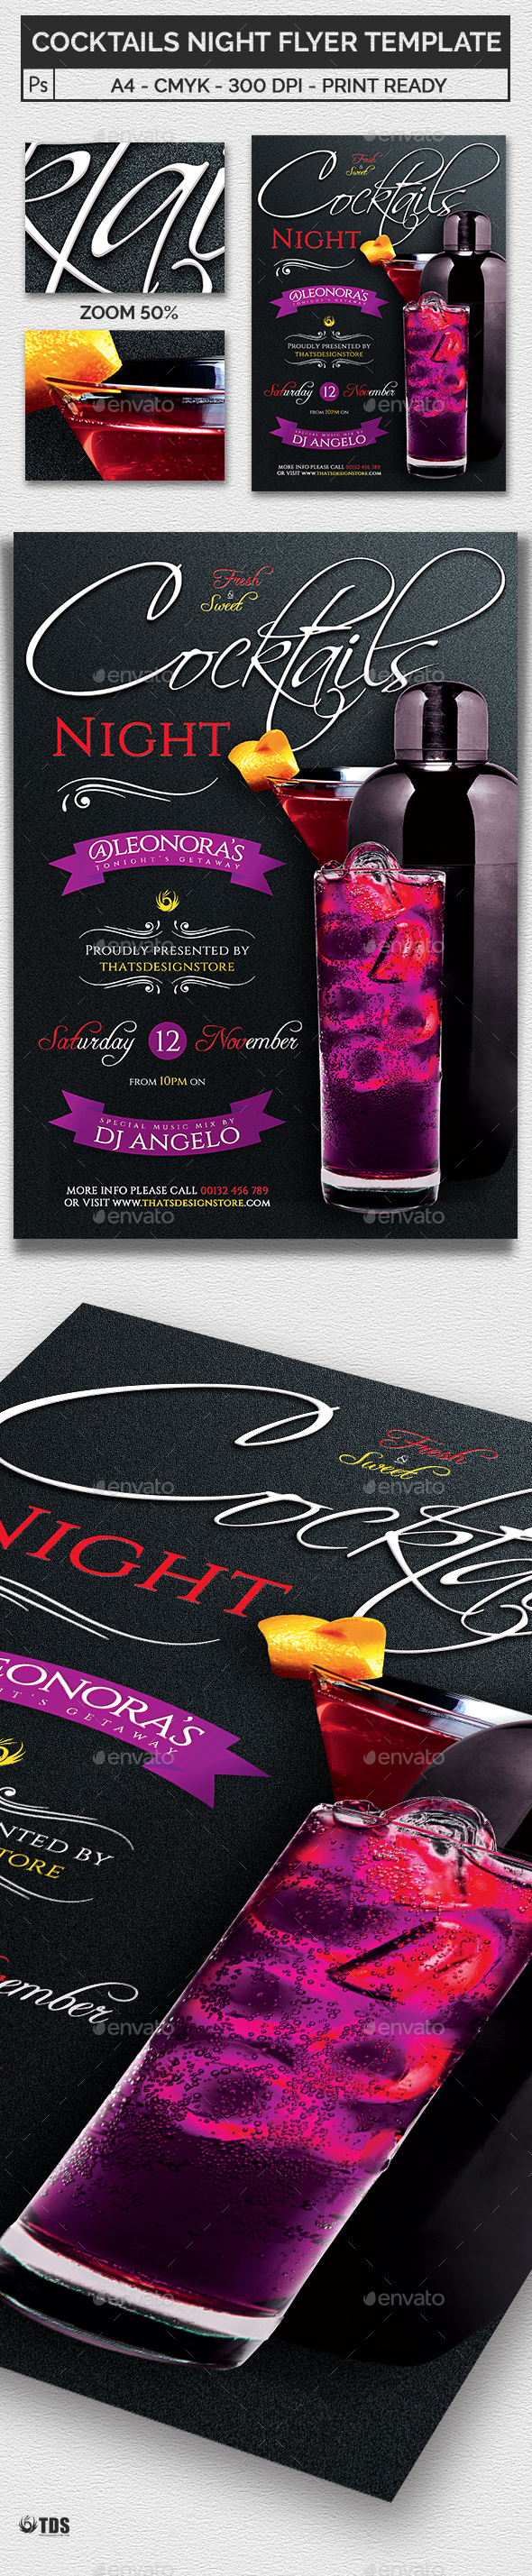 Cocktails Night Flyer Template - Clubs & Parties Events